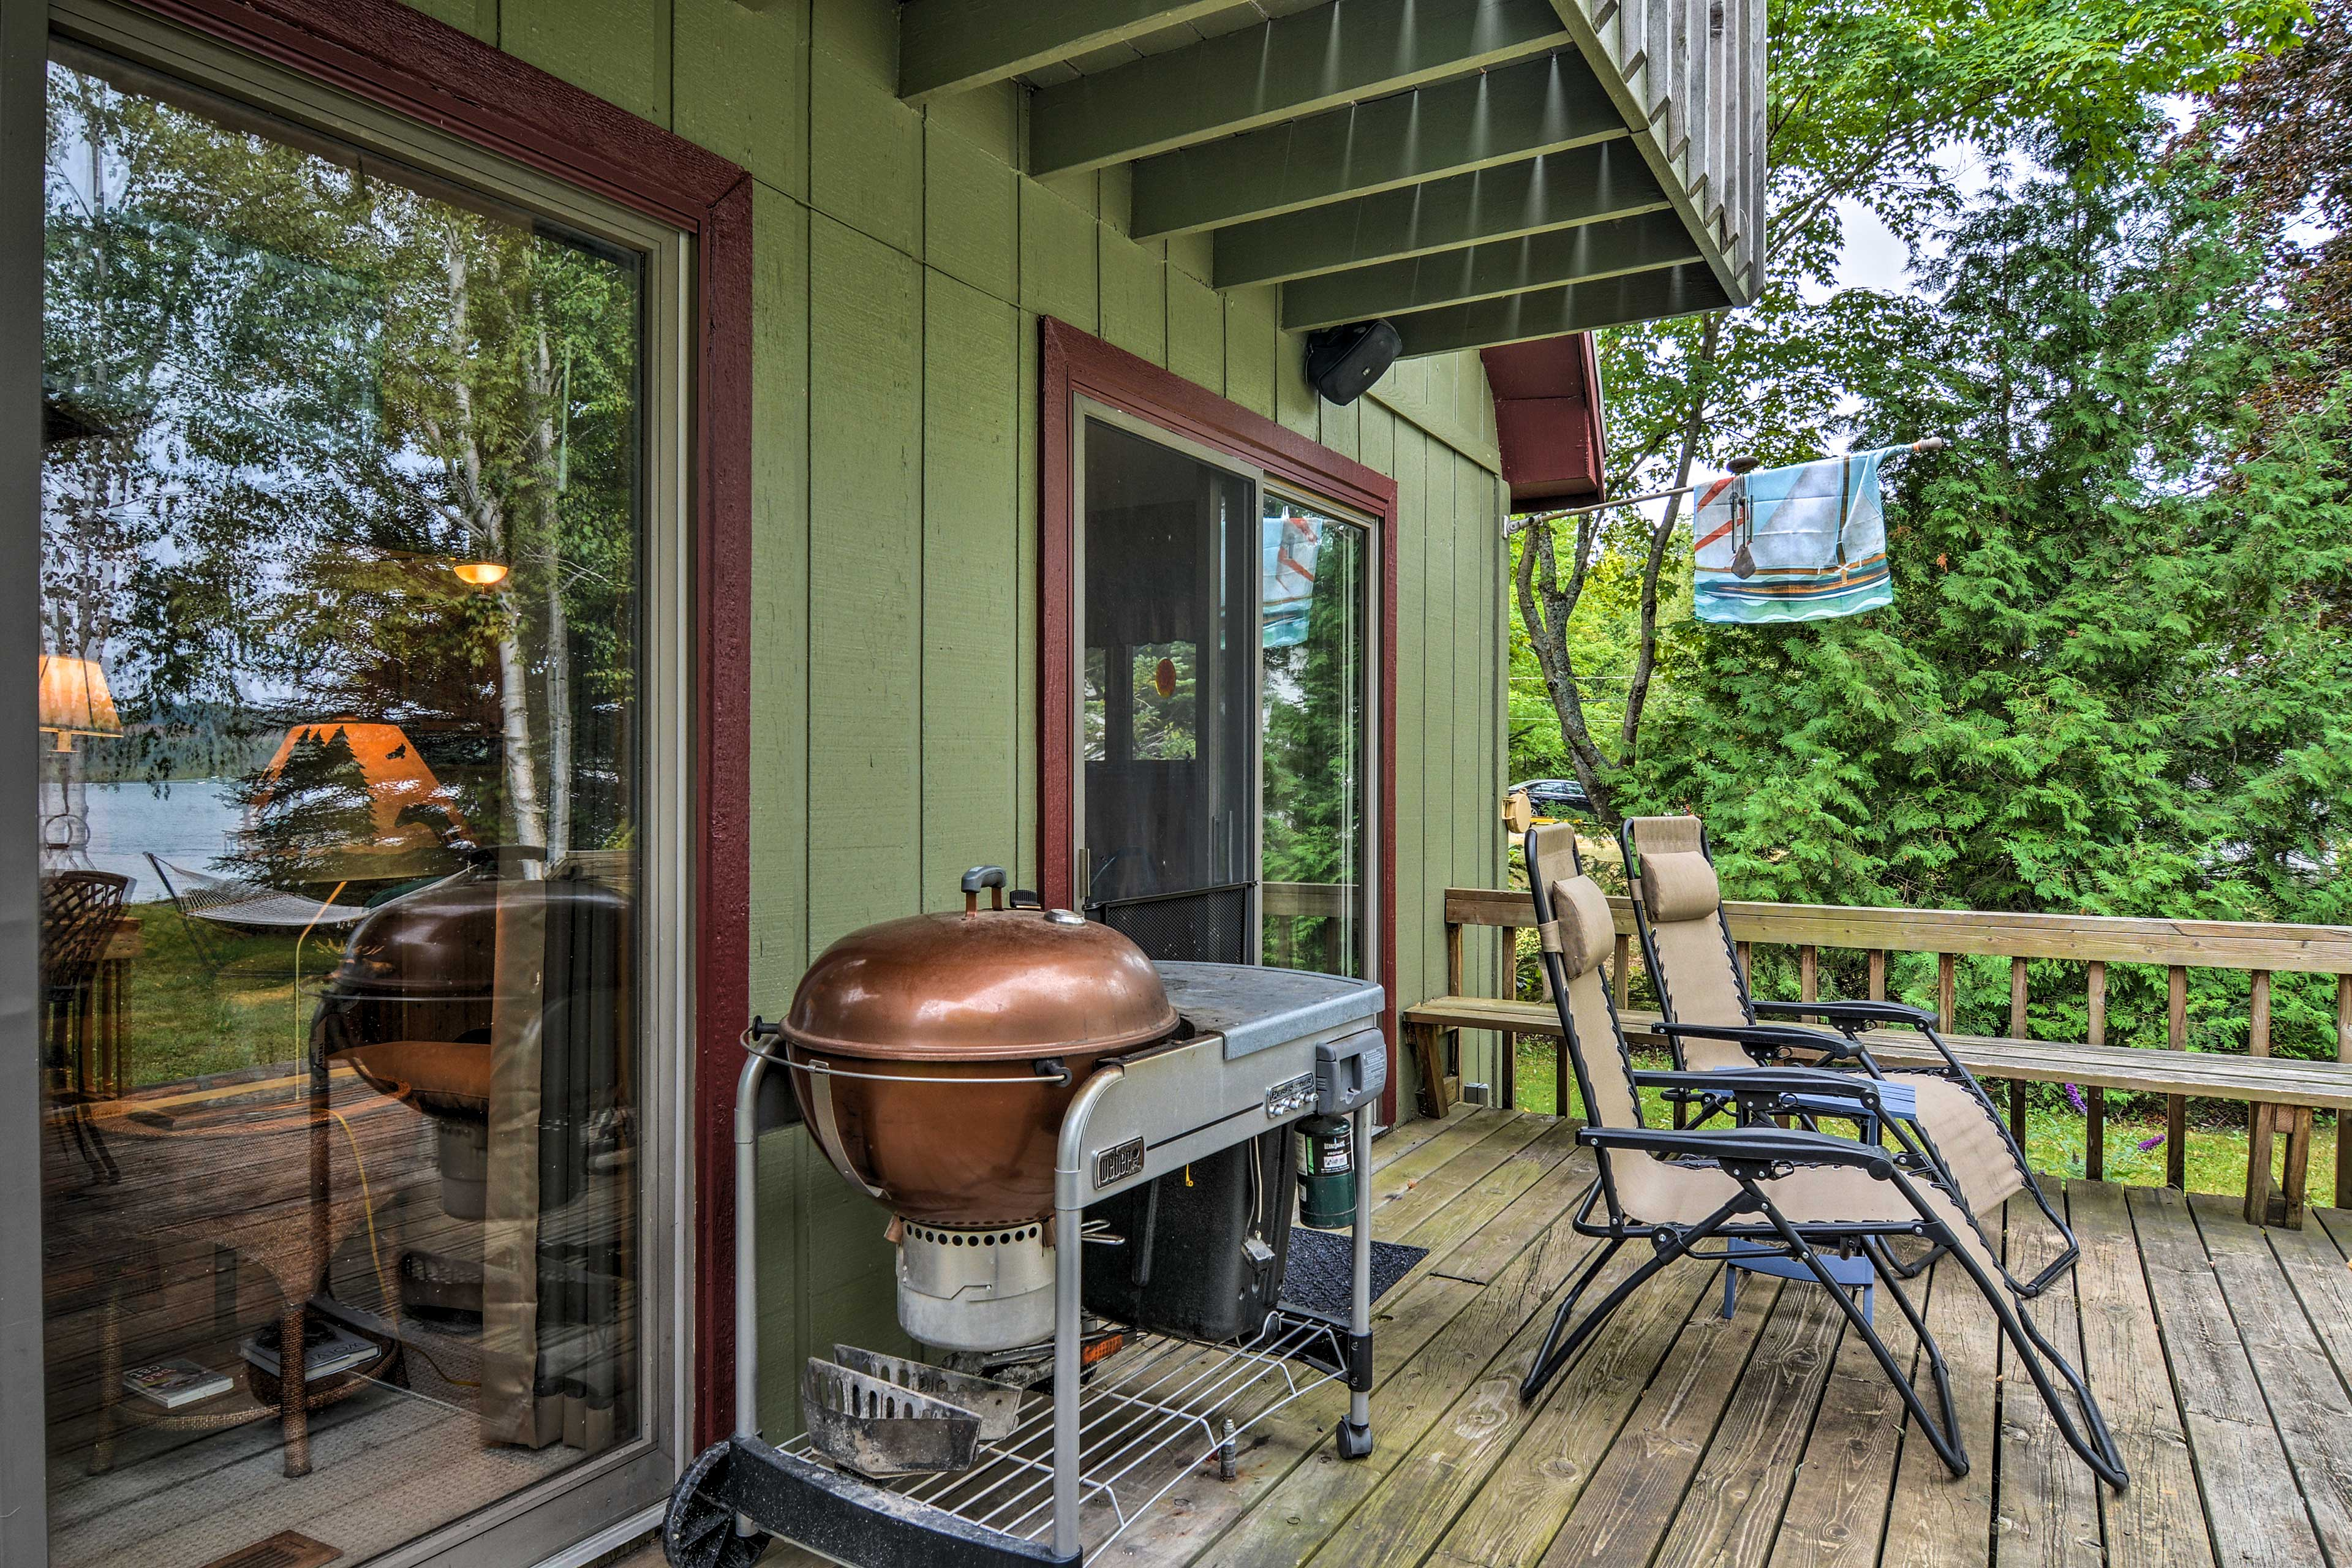 Use the charcoal grill to cook up some hamburgers for a summer barbecue.